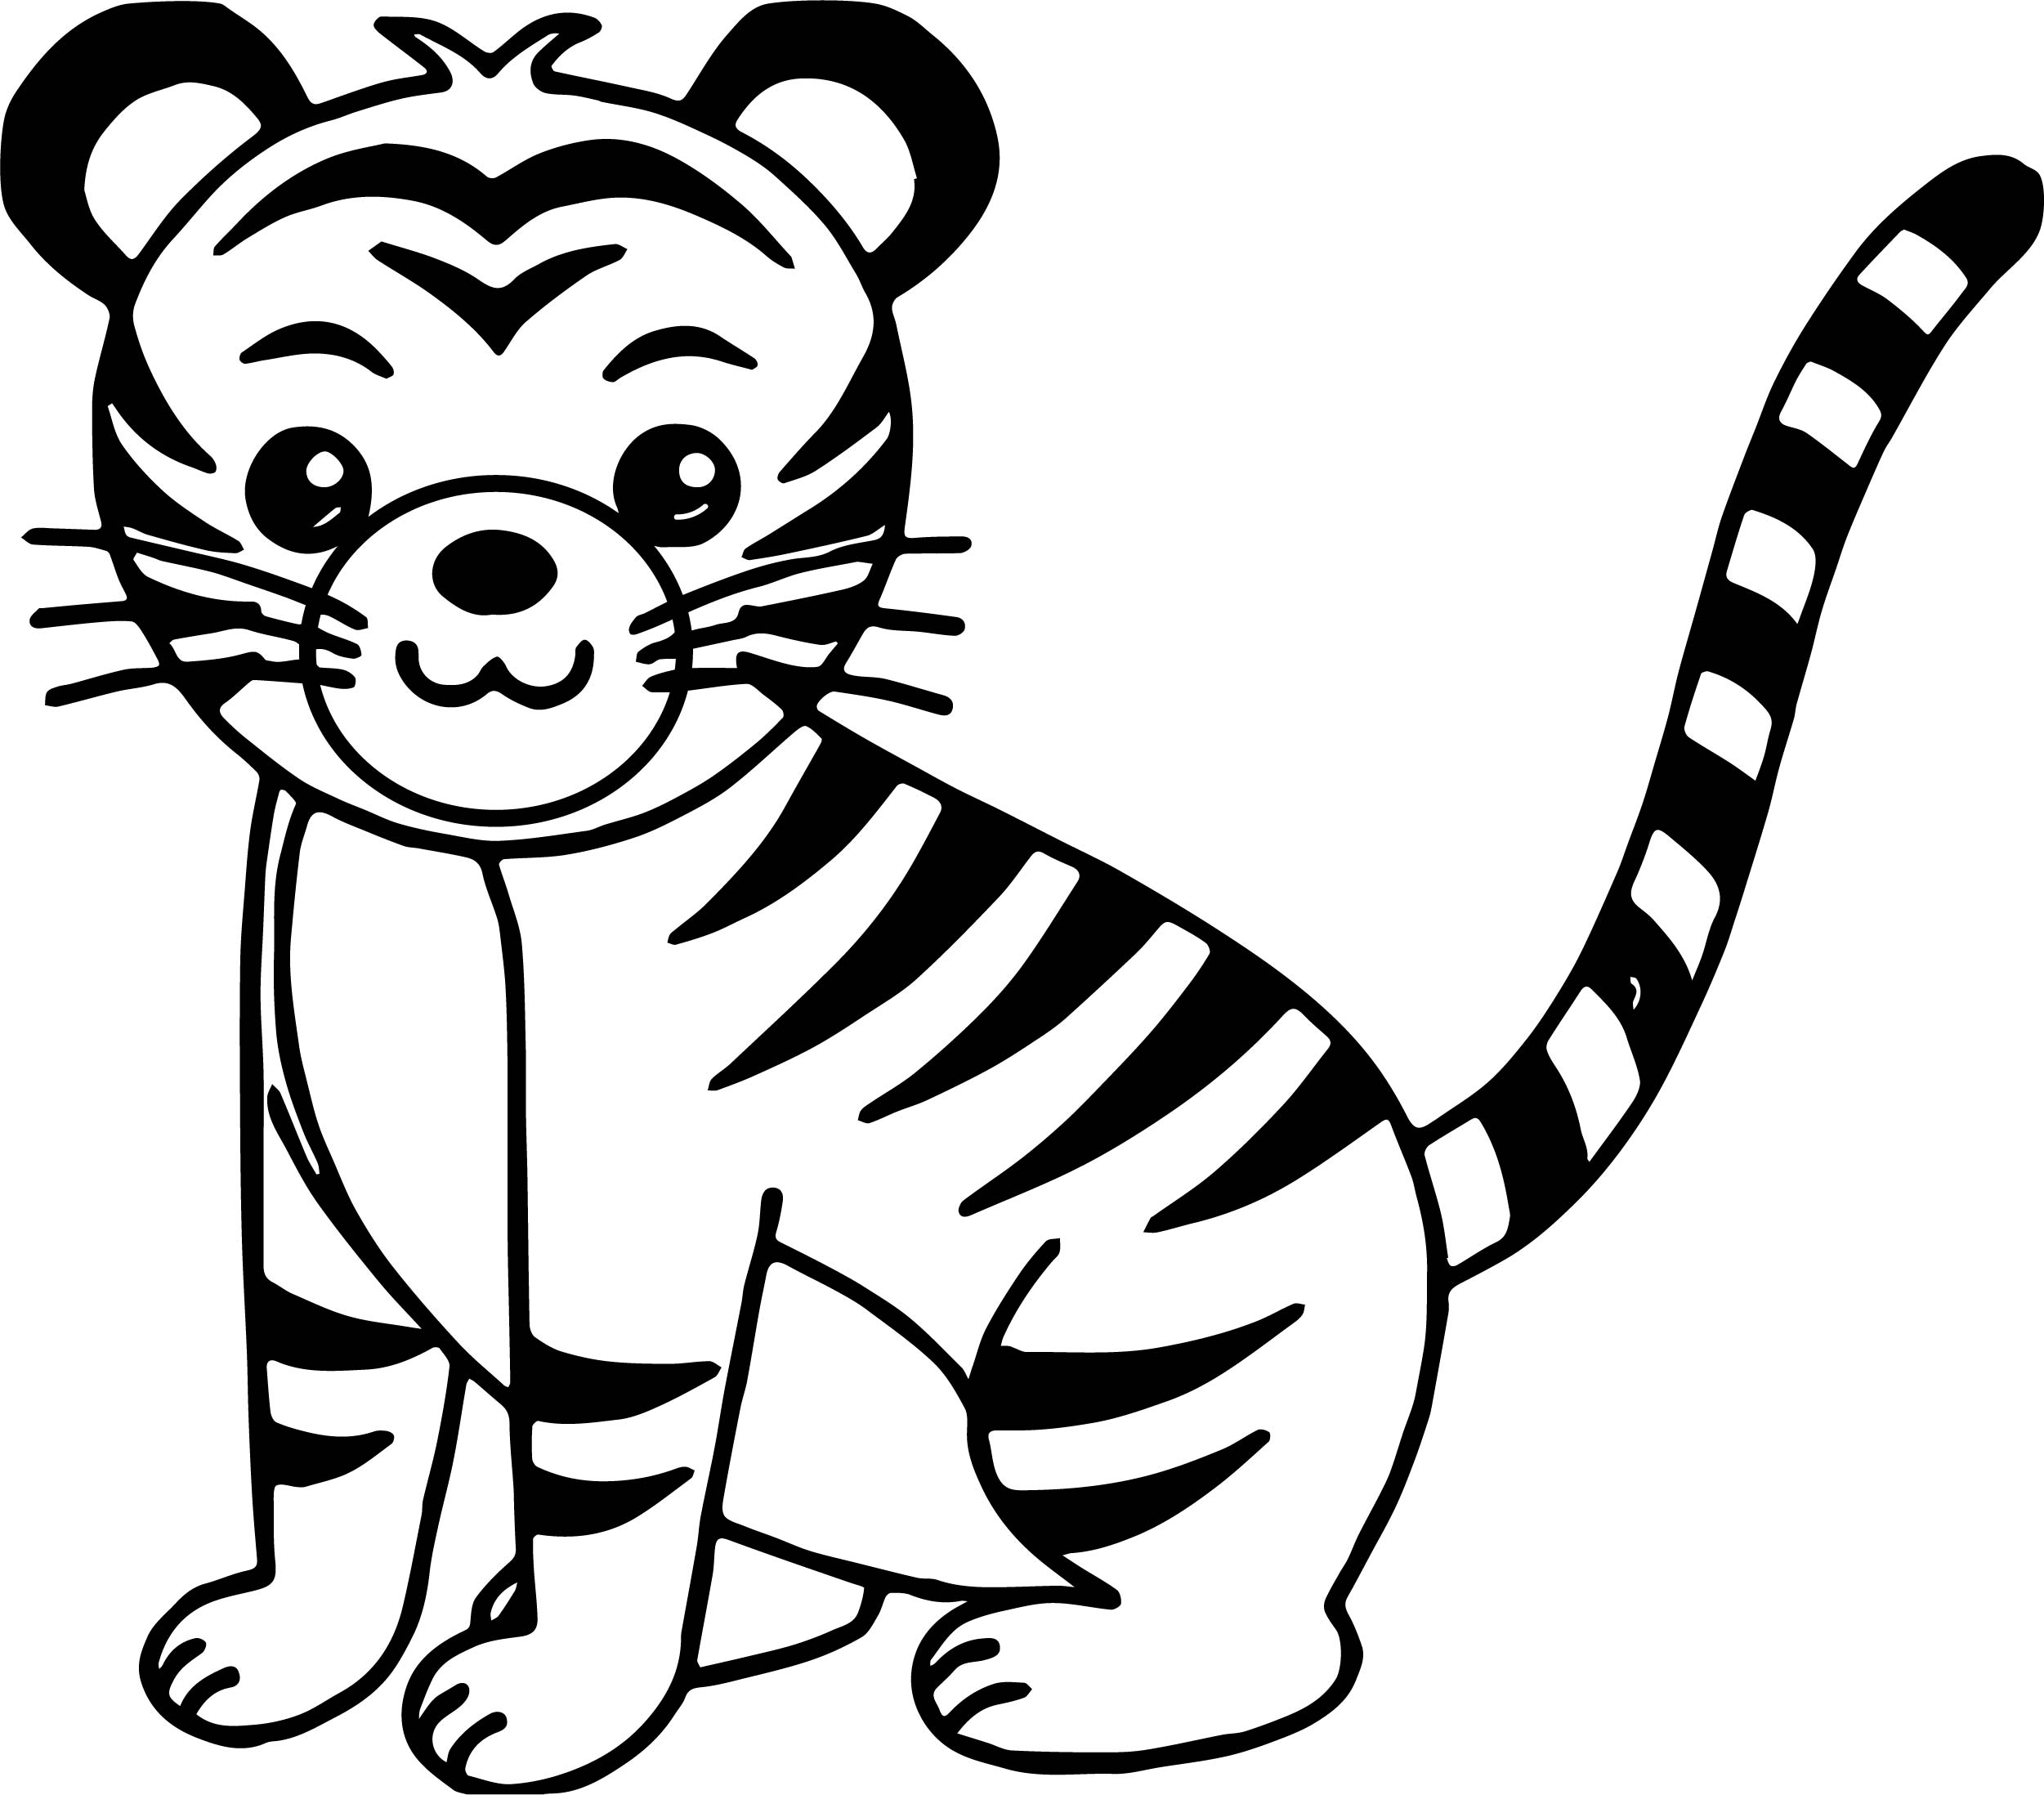 coloring page of tiger free tiger coloring pages coloring page of tiger